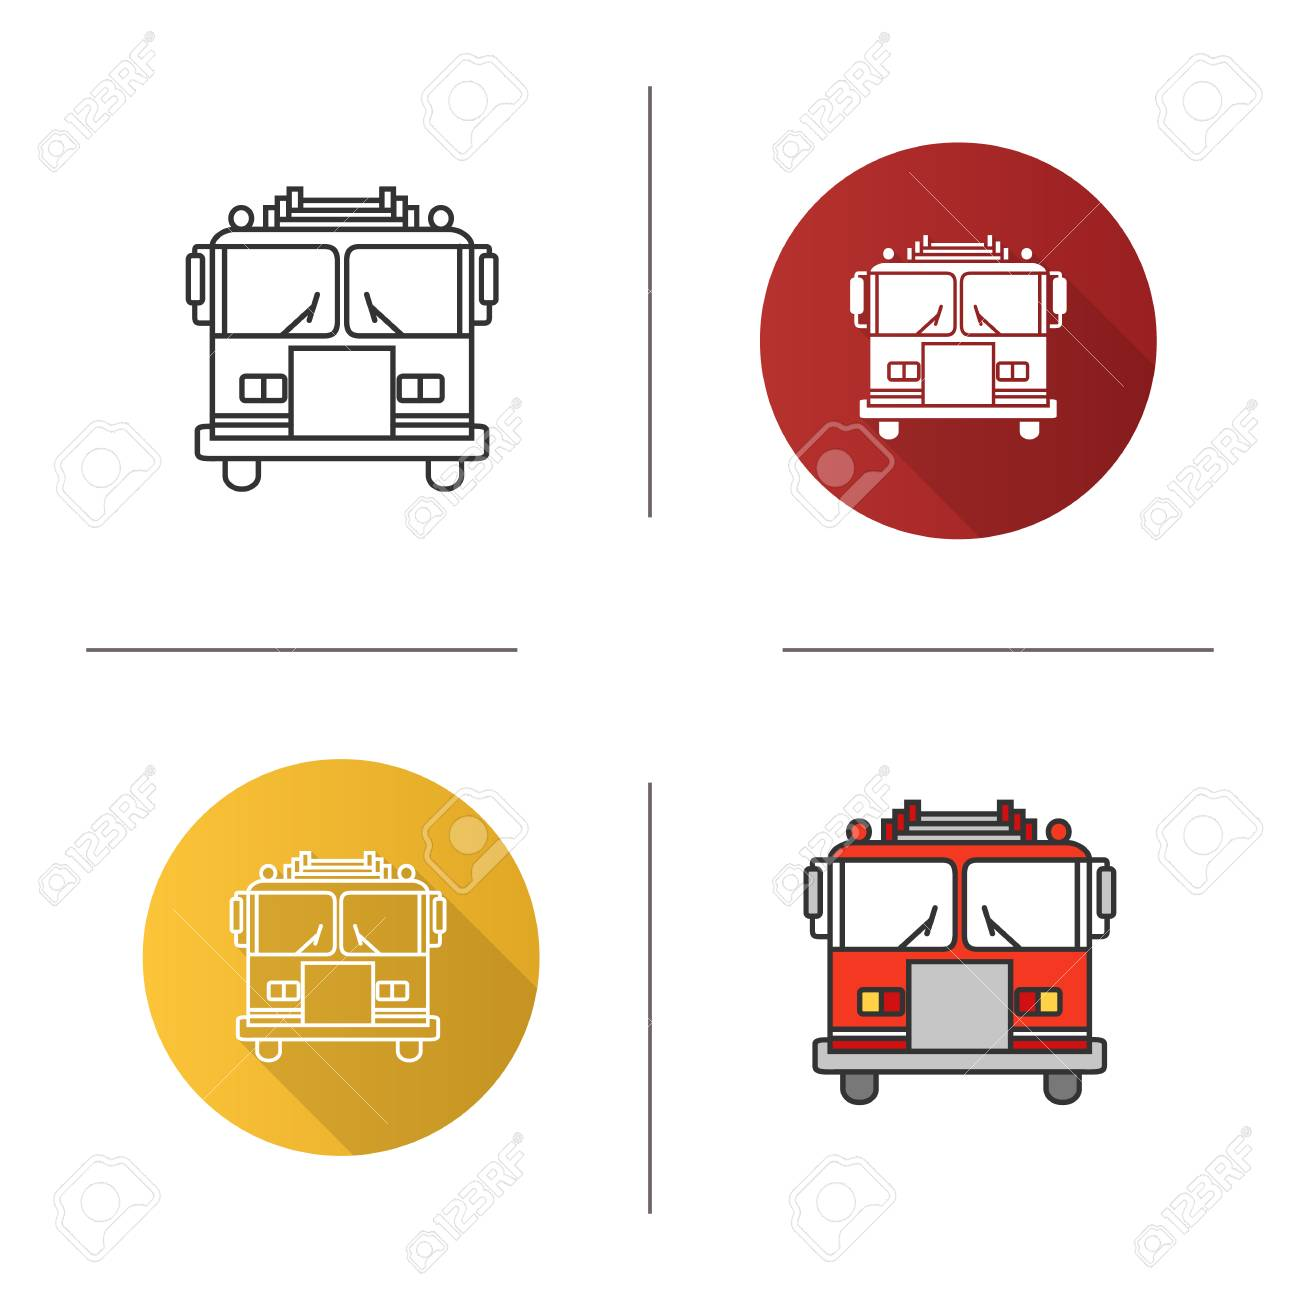 hight resolution of fire engine diagram in color wiring diagram compilationfire engine icon flat design linear and color